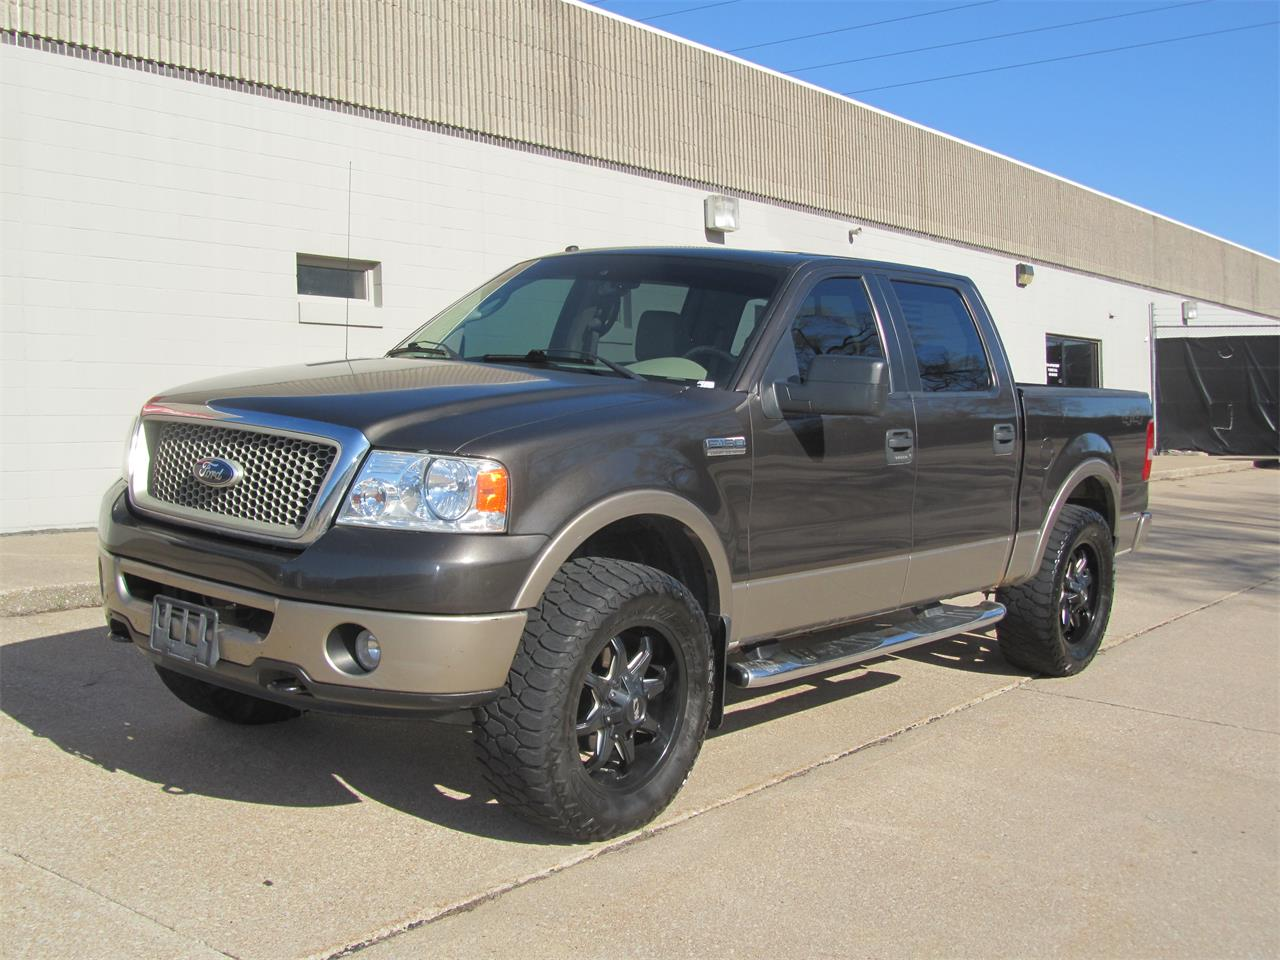 2006 F150 For Sale >> 2006 Ford F150 For Sale Classiccars Com Cc 1209329